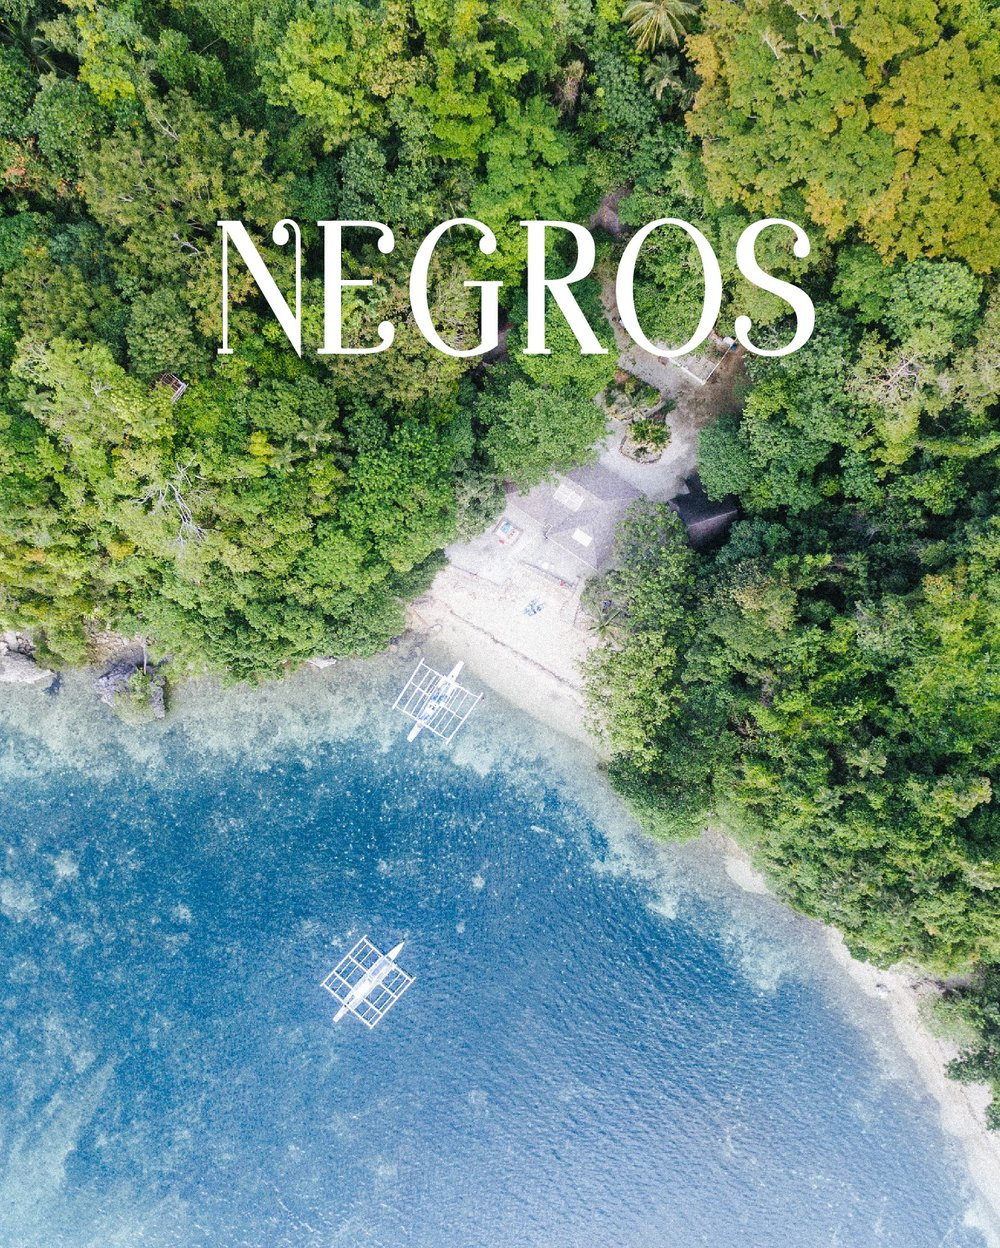 The Philippines  3-5 Weeks |   Negros January 15 2019